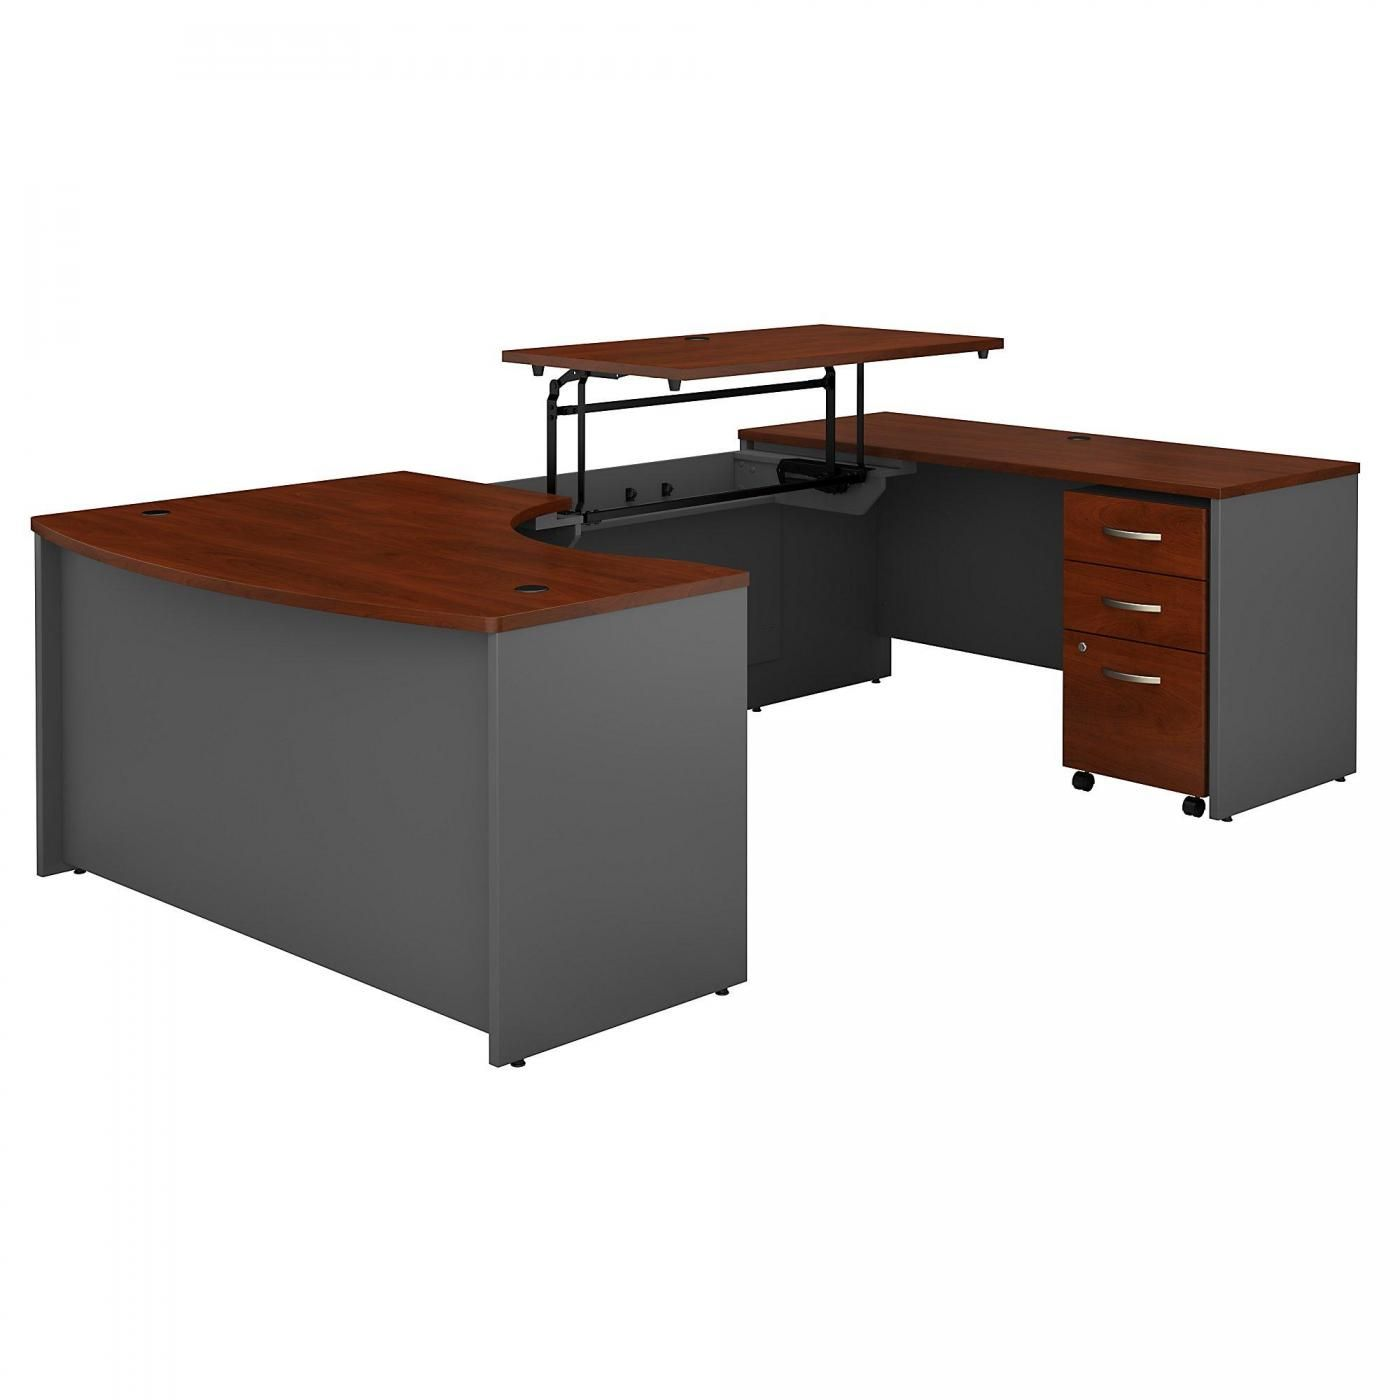 <font color=#c60><b>BUSH BUSINESS FURNITURE SERIES C 60W X 43D LEFT HAND 3 POSITION SIT TO STAND U SHAPED DESK WITH MOBILE FILE CABINET. FREE SHIPPING. VIDEO:</font></b>